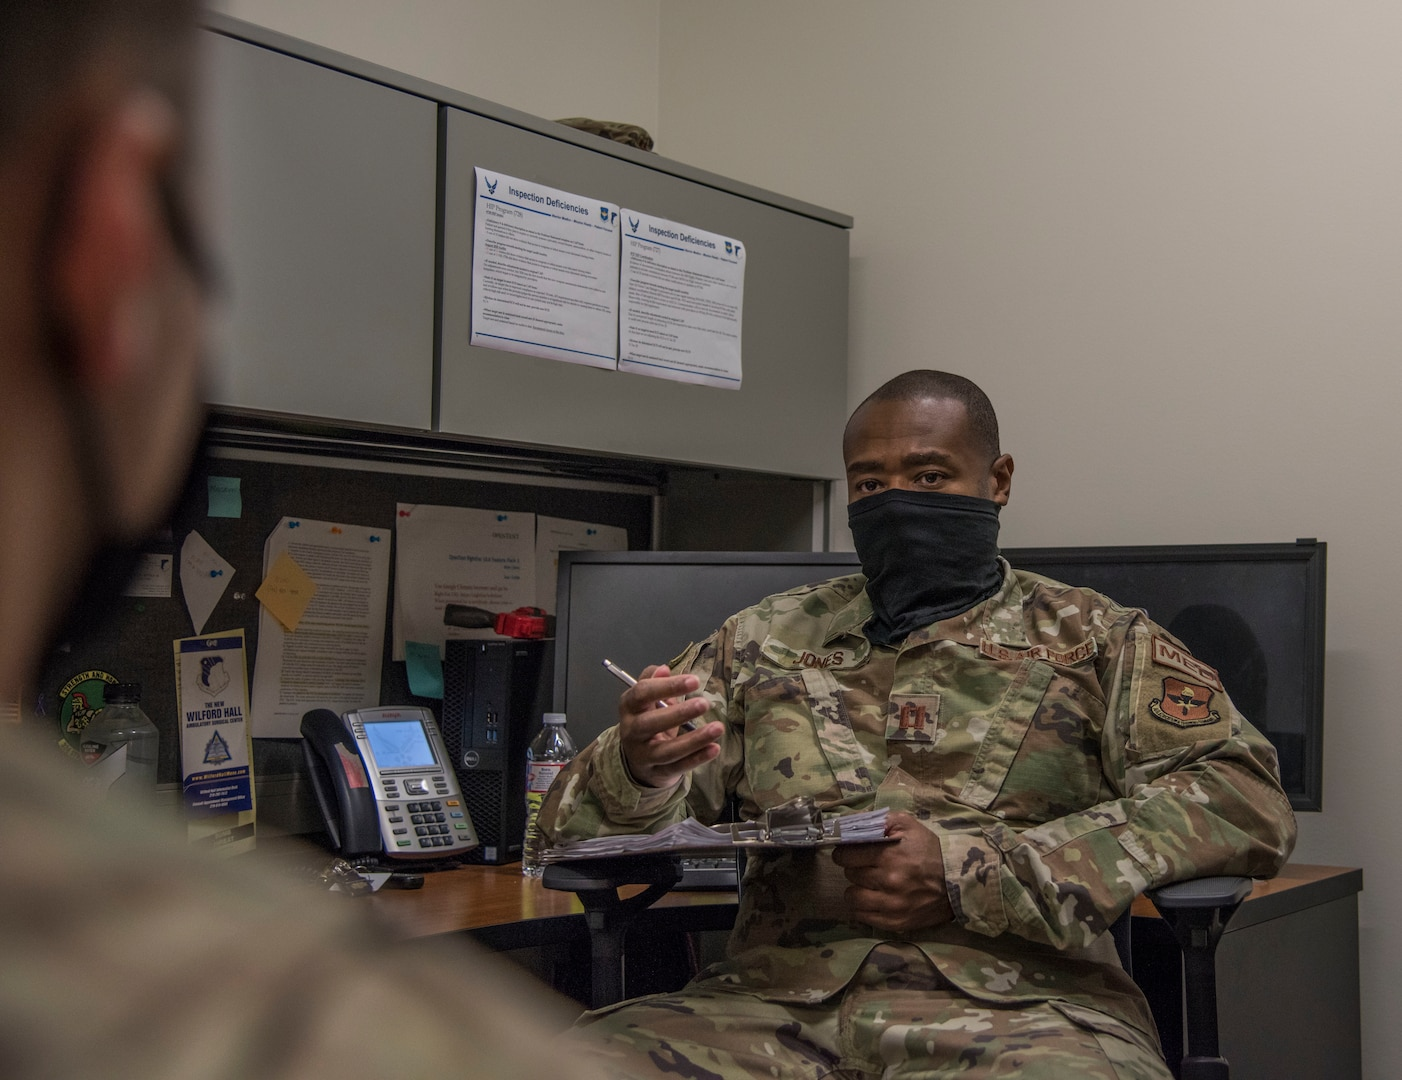 Mental health providers guide patients through challenging times, to include stress or anxiety due to the pandemic, both in person or through telehealth.